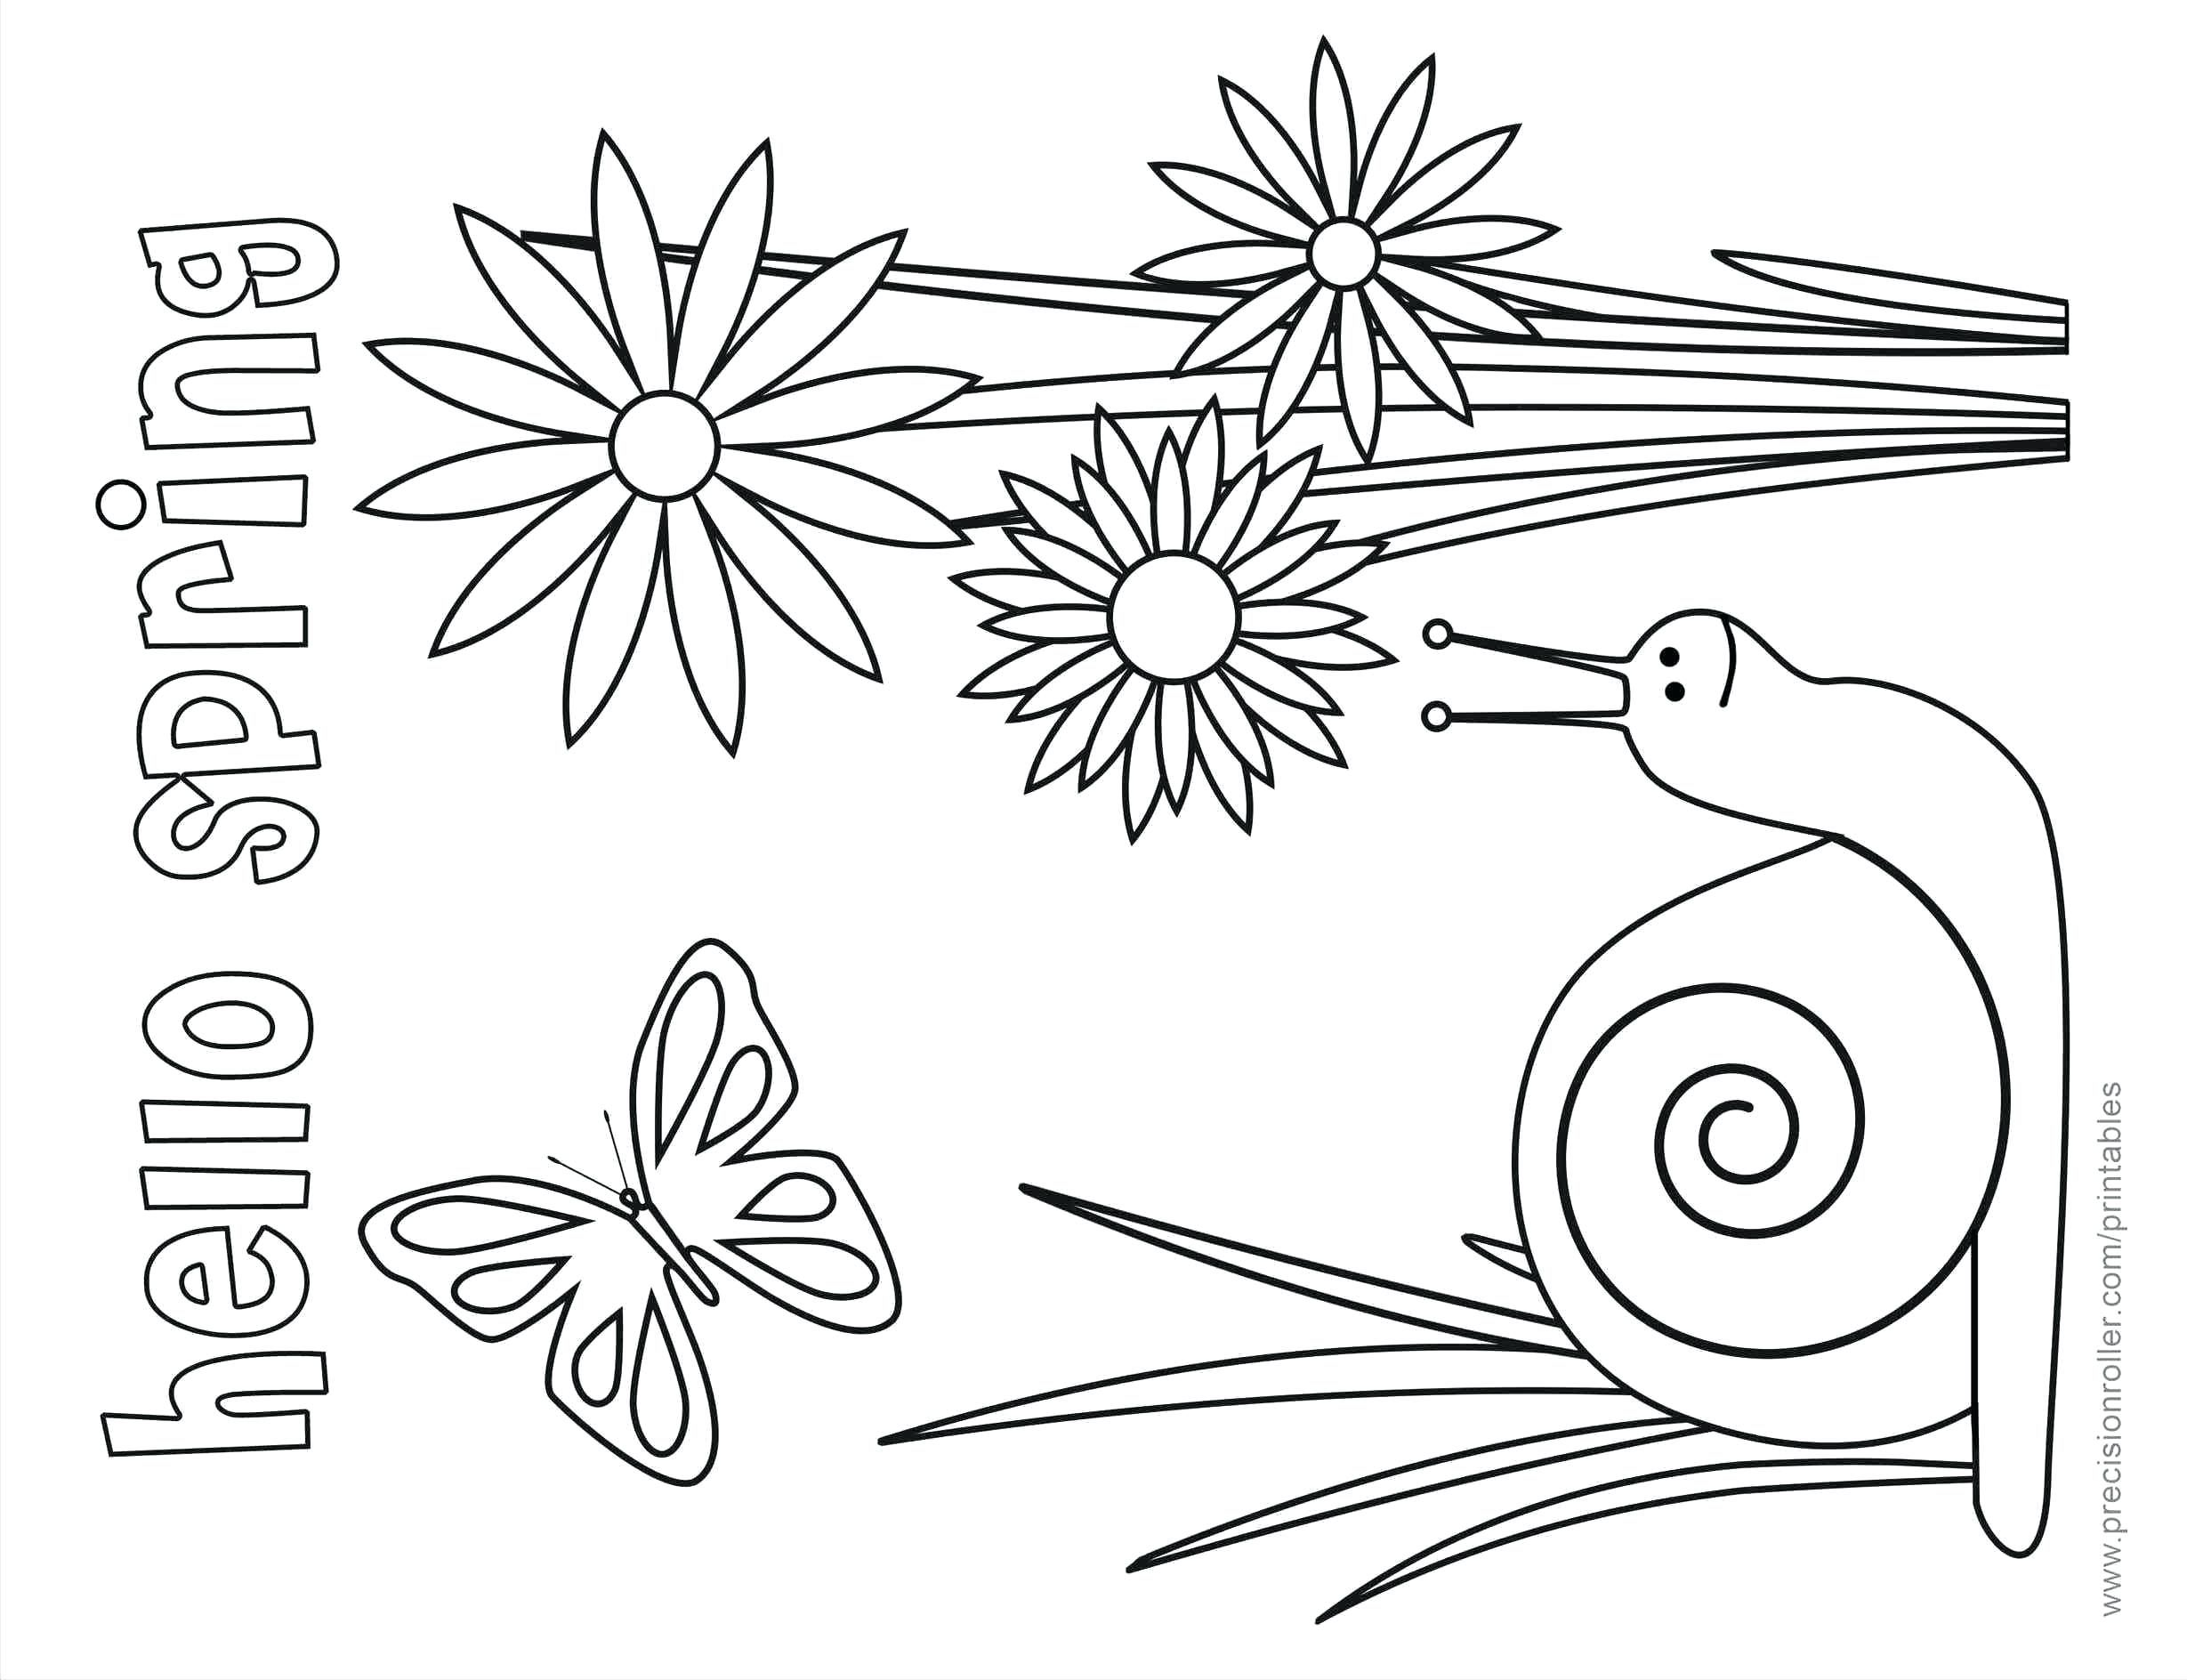 Spring Coloring Sheets For Boys Spring Coloring Sheets Coloring Sheets For Boys Coloring Pictures